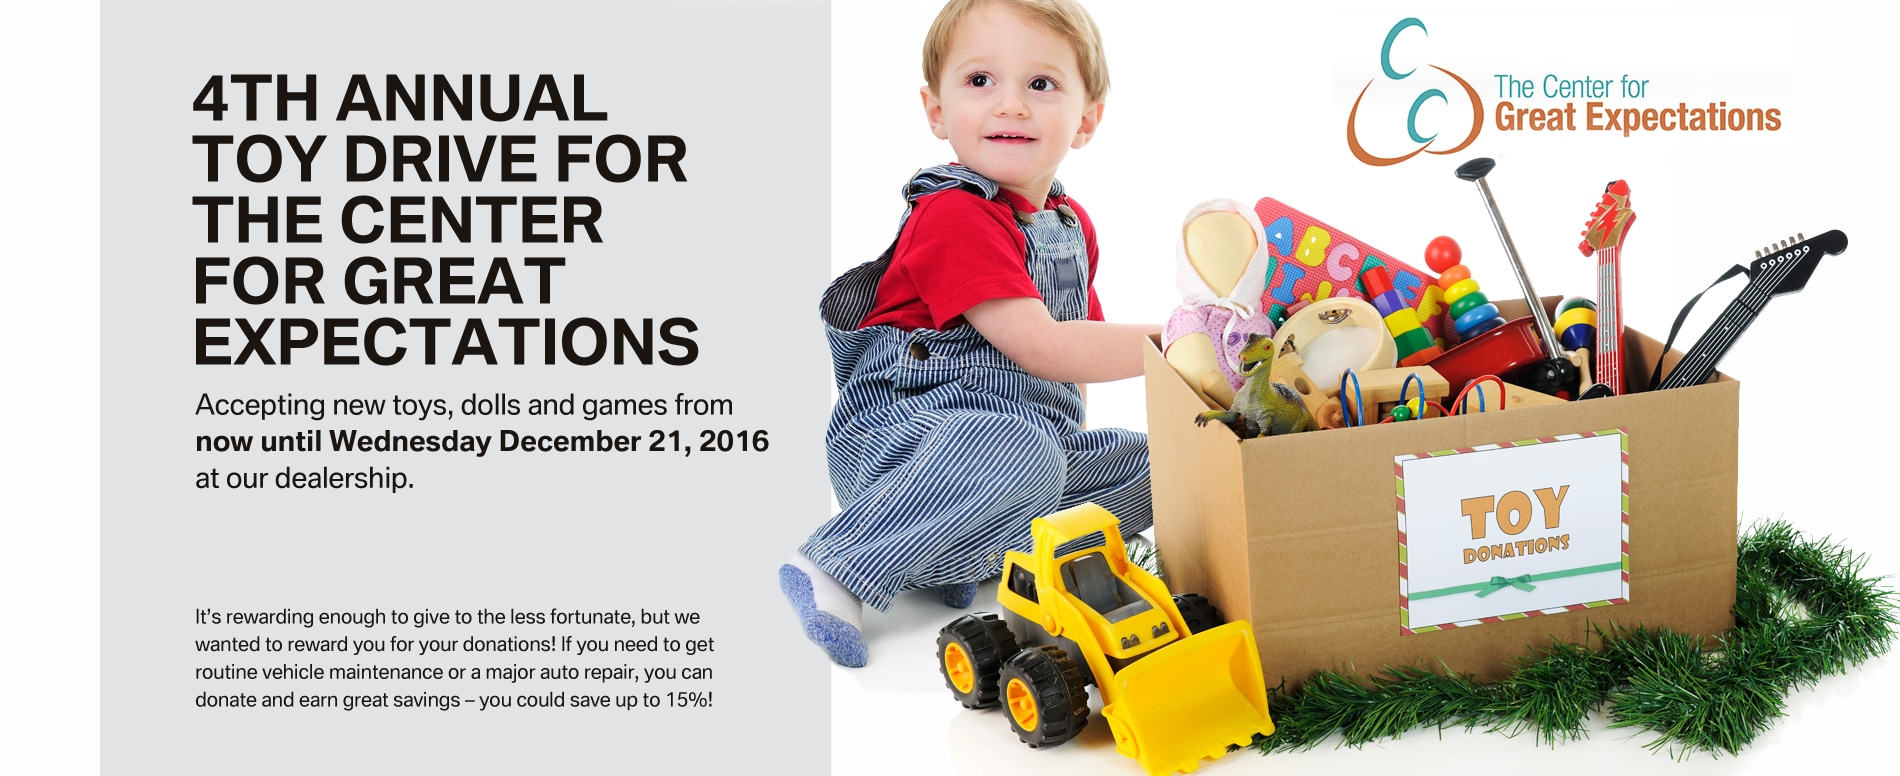 Center For Great Expectations Toy Drive